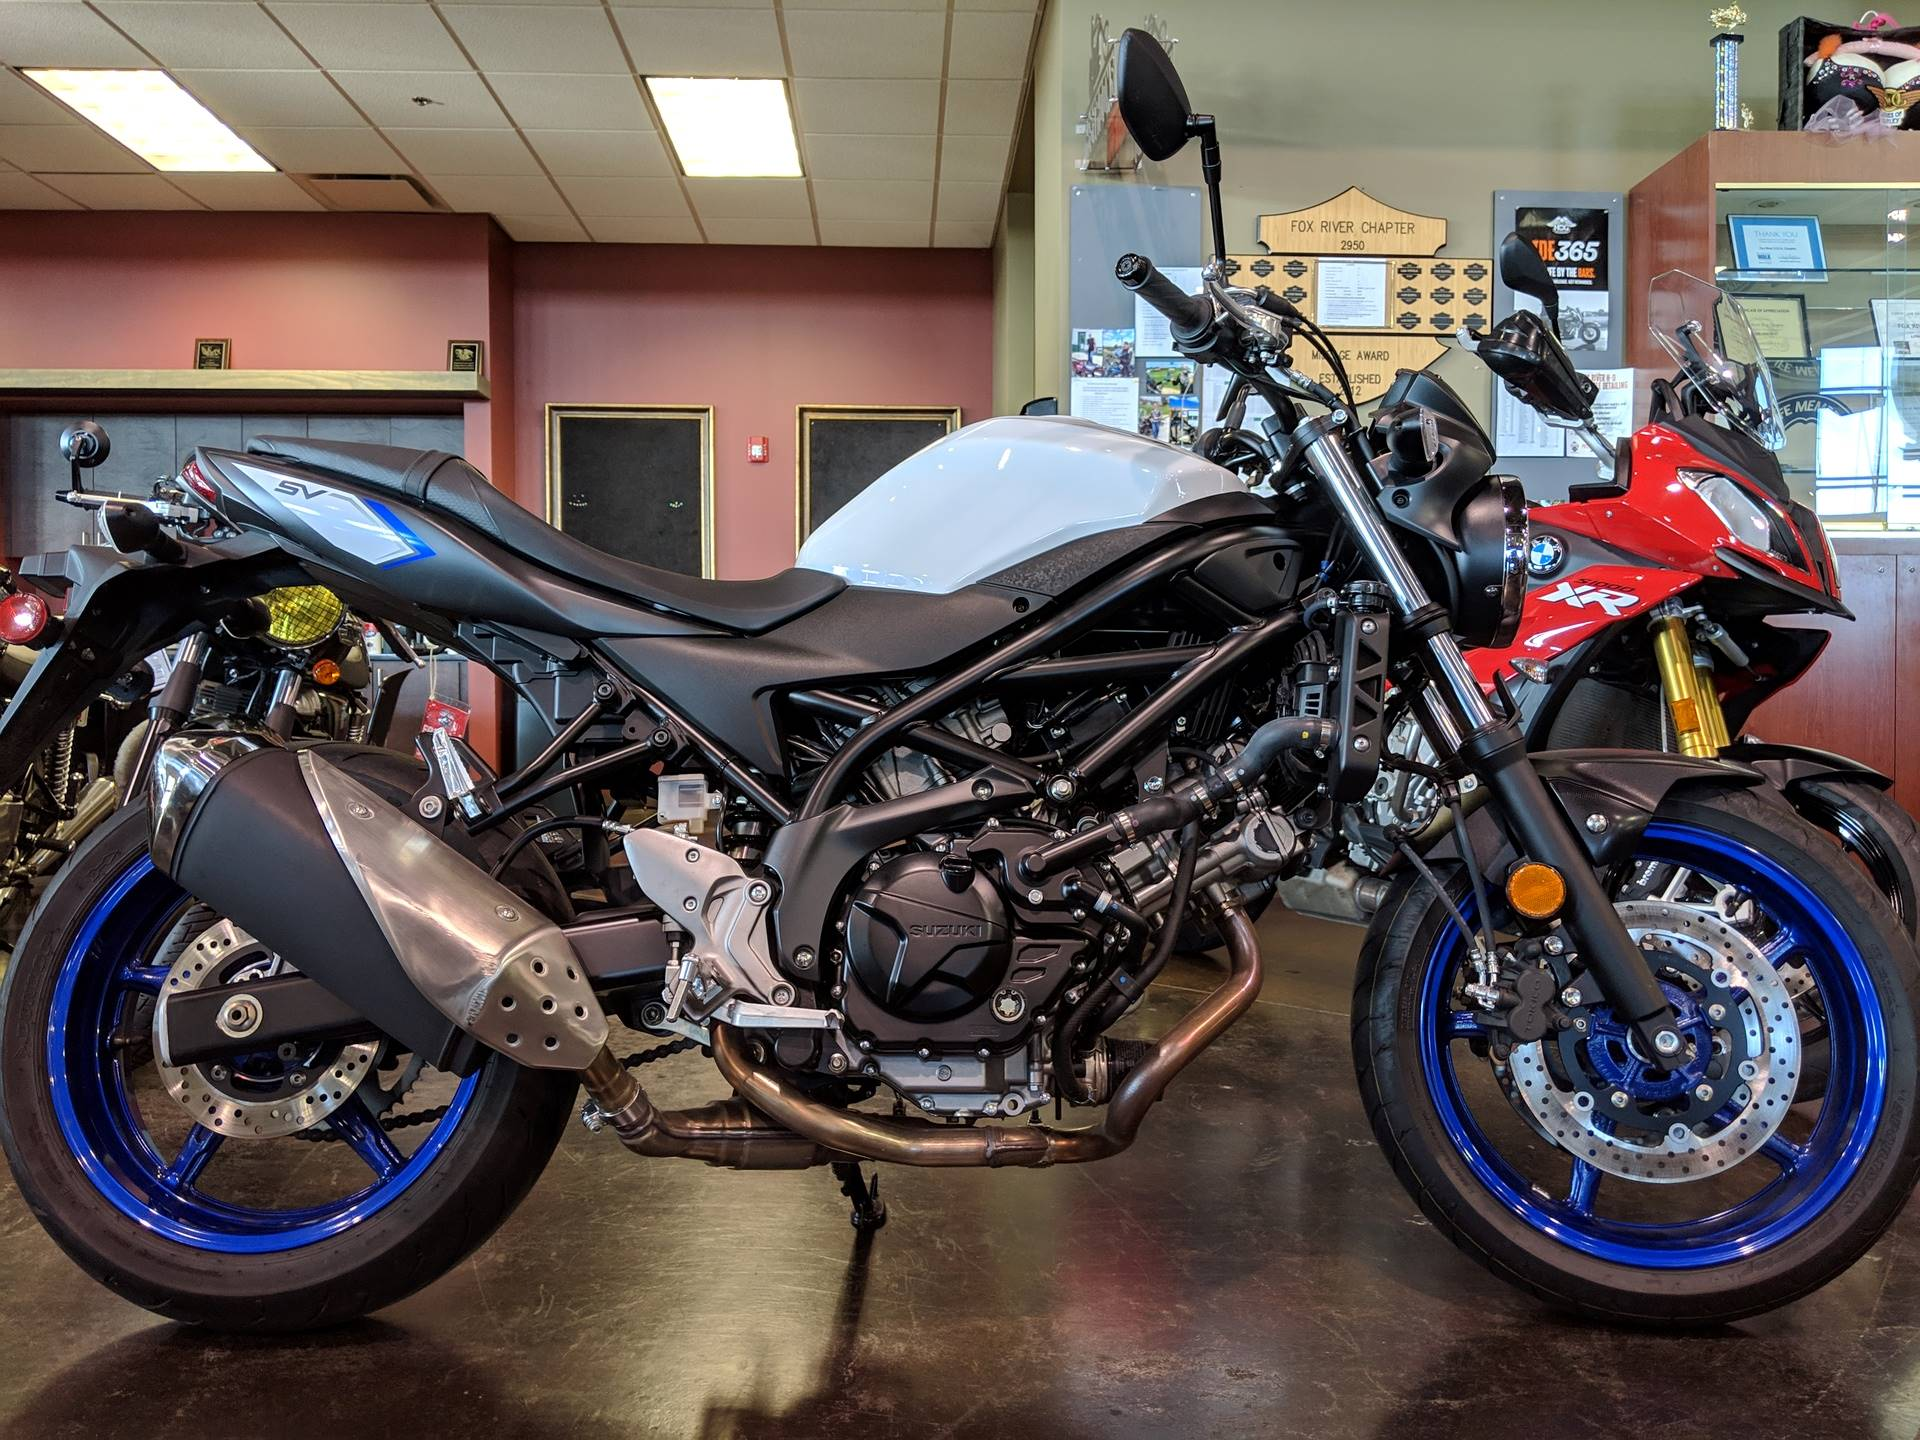 2017 Suzuki SV650 for sale 33508